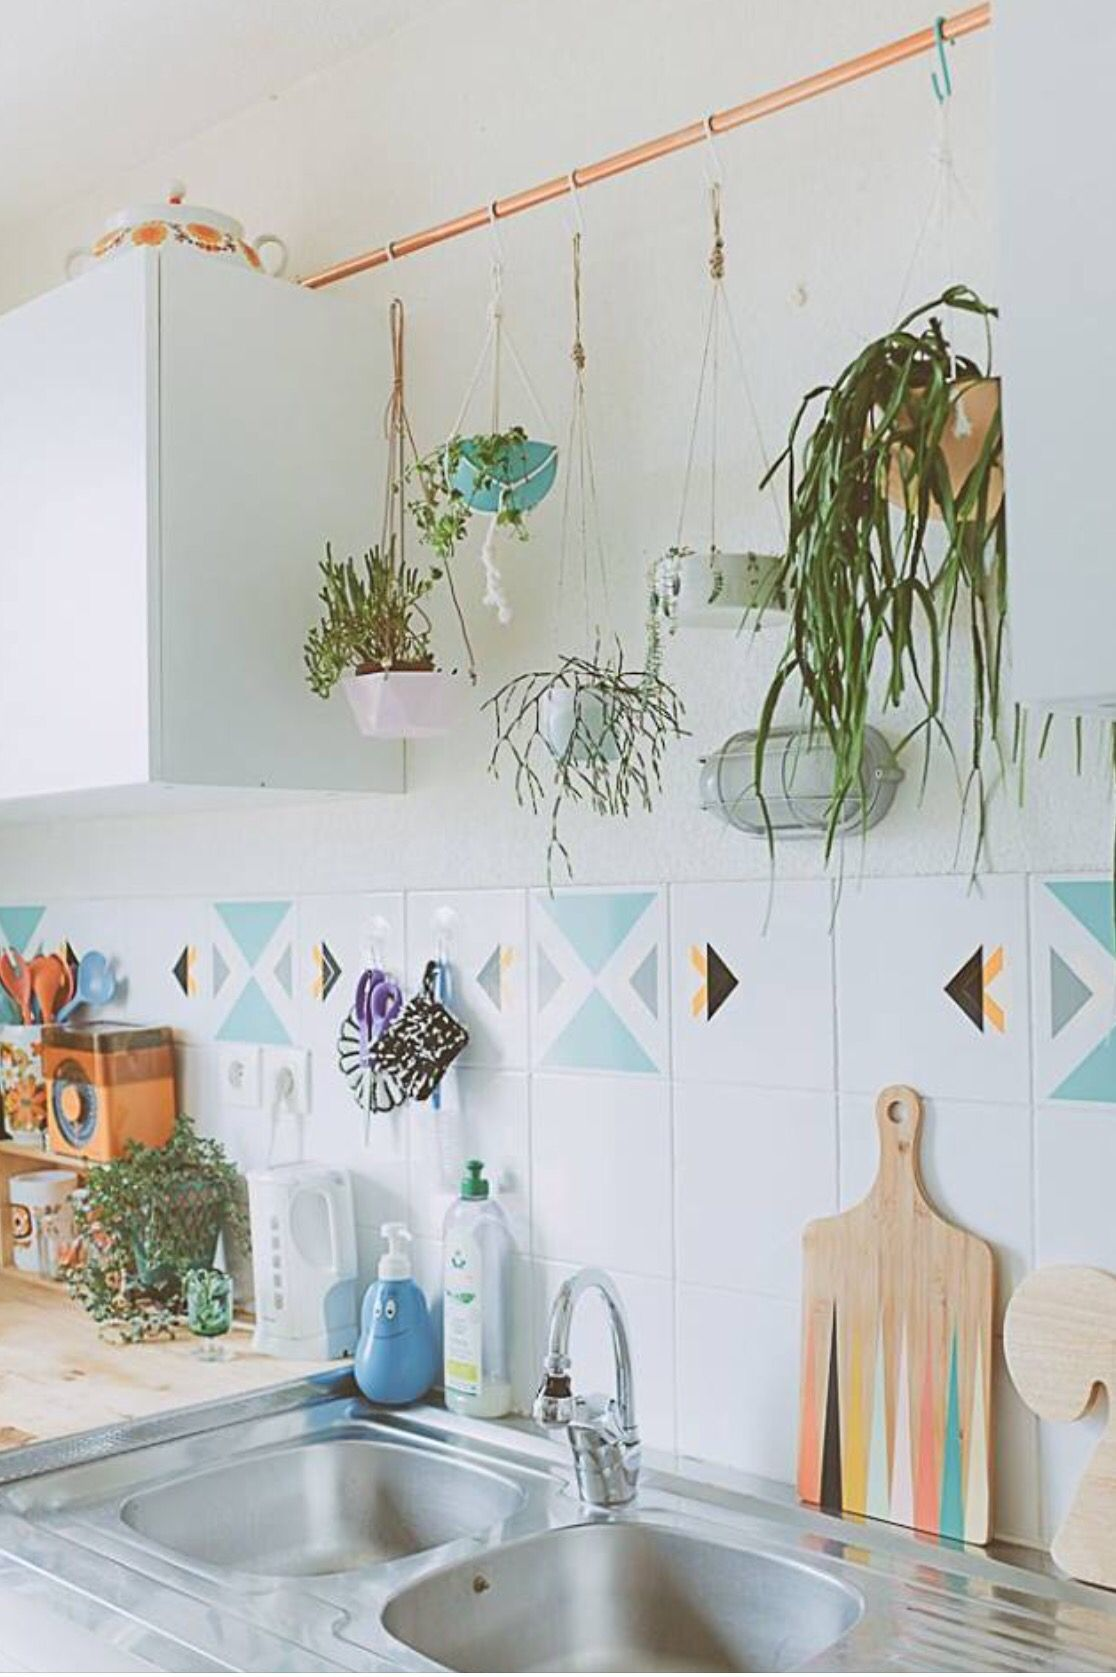 I like the pipe with hanging plants, could do over a sink or in front of a window.